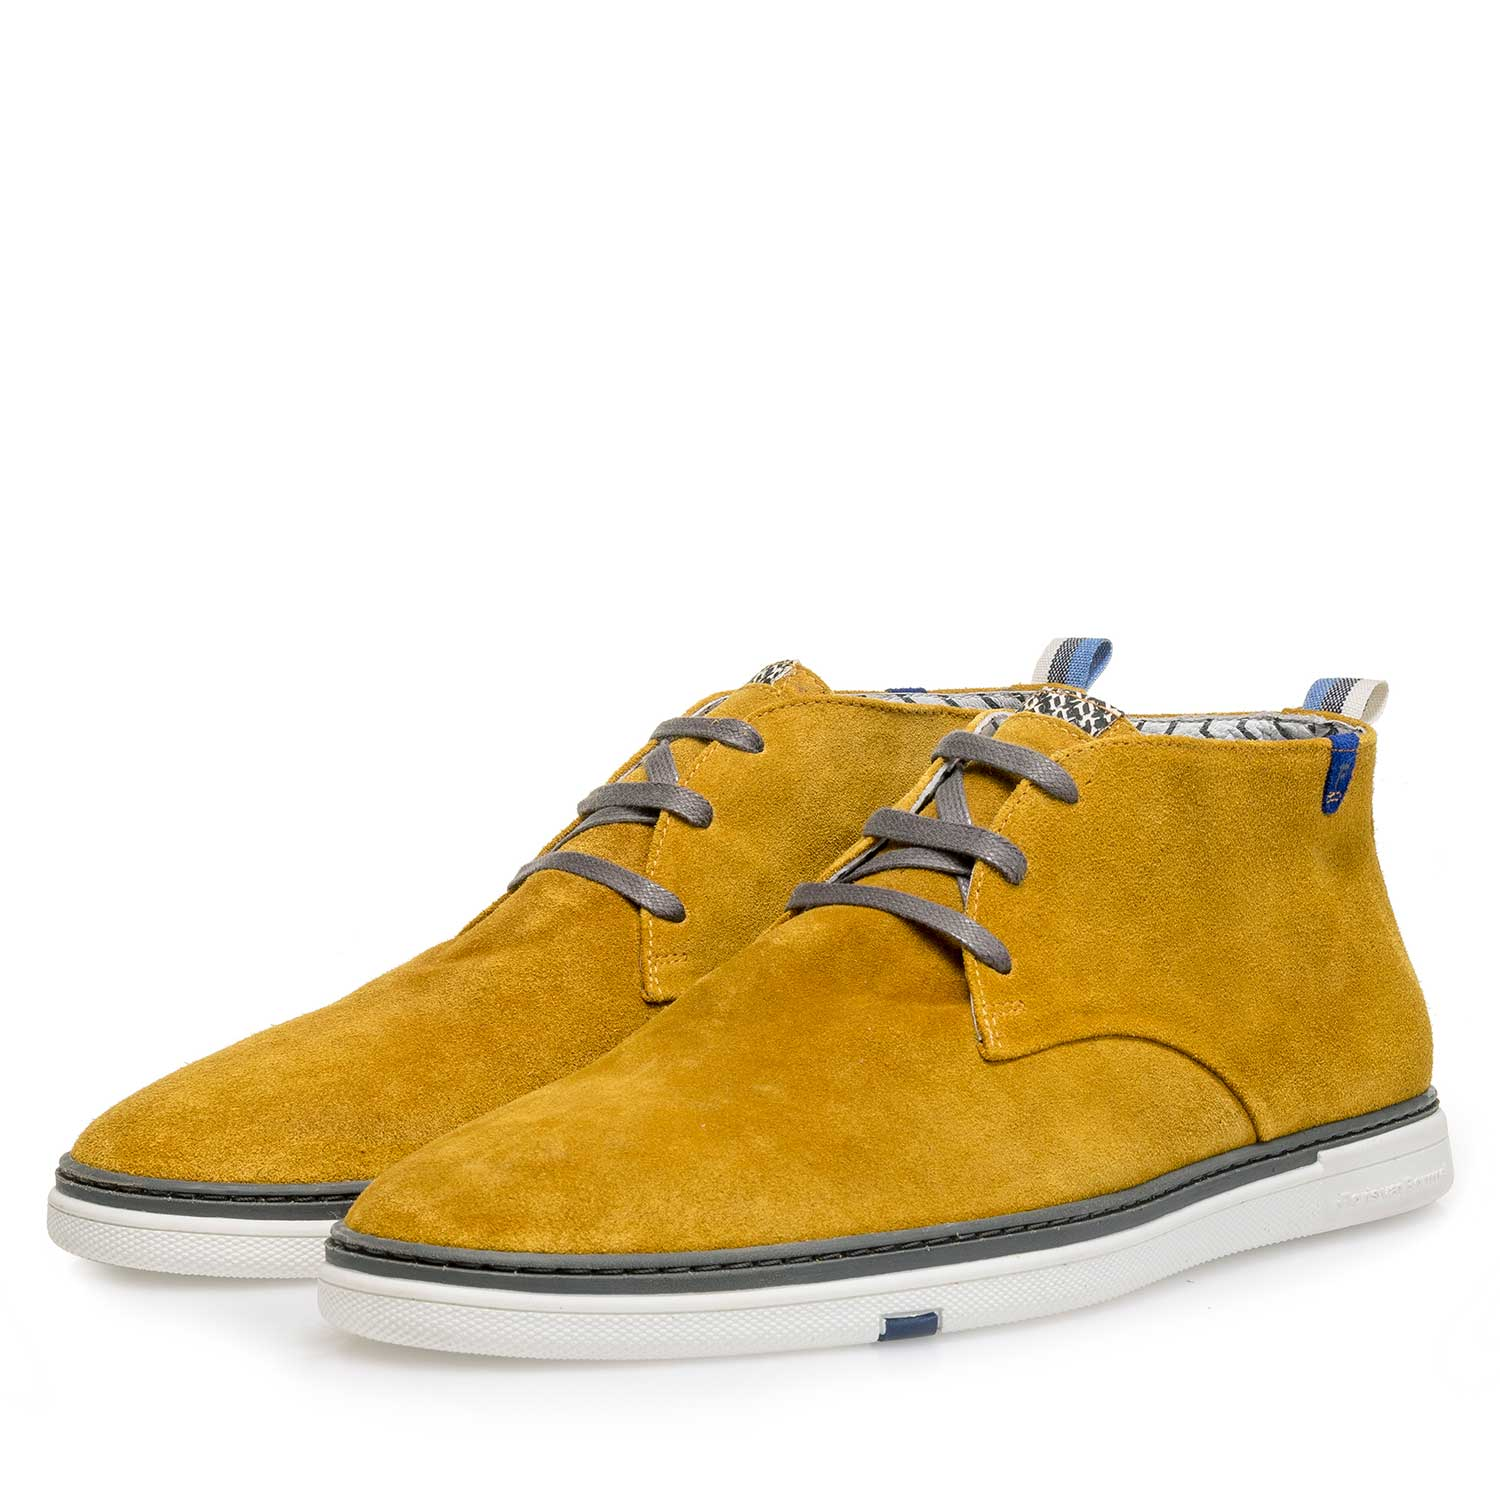 10502/05 - Mustard-coloured washed suede leather lace boot